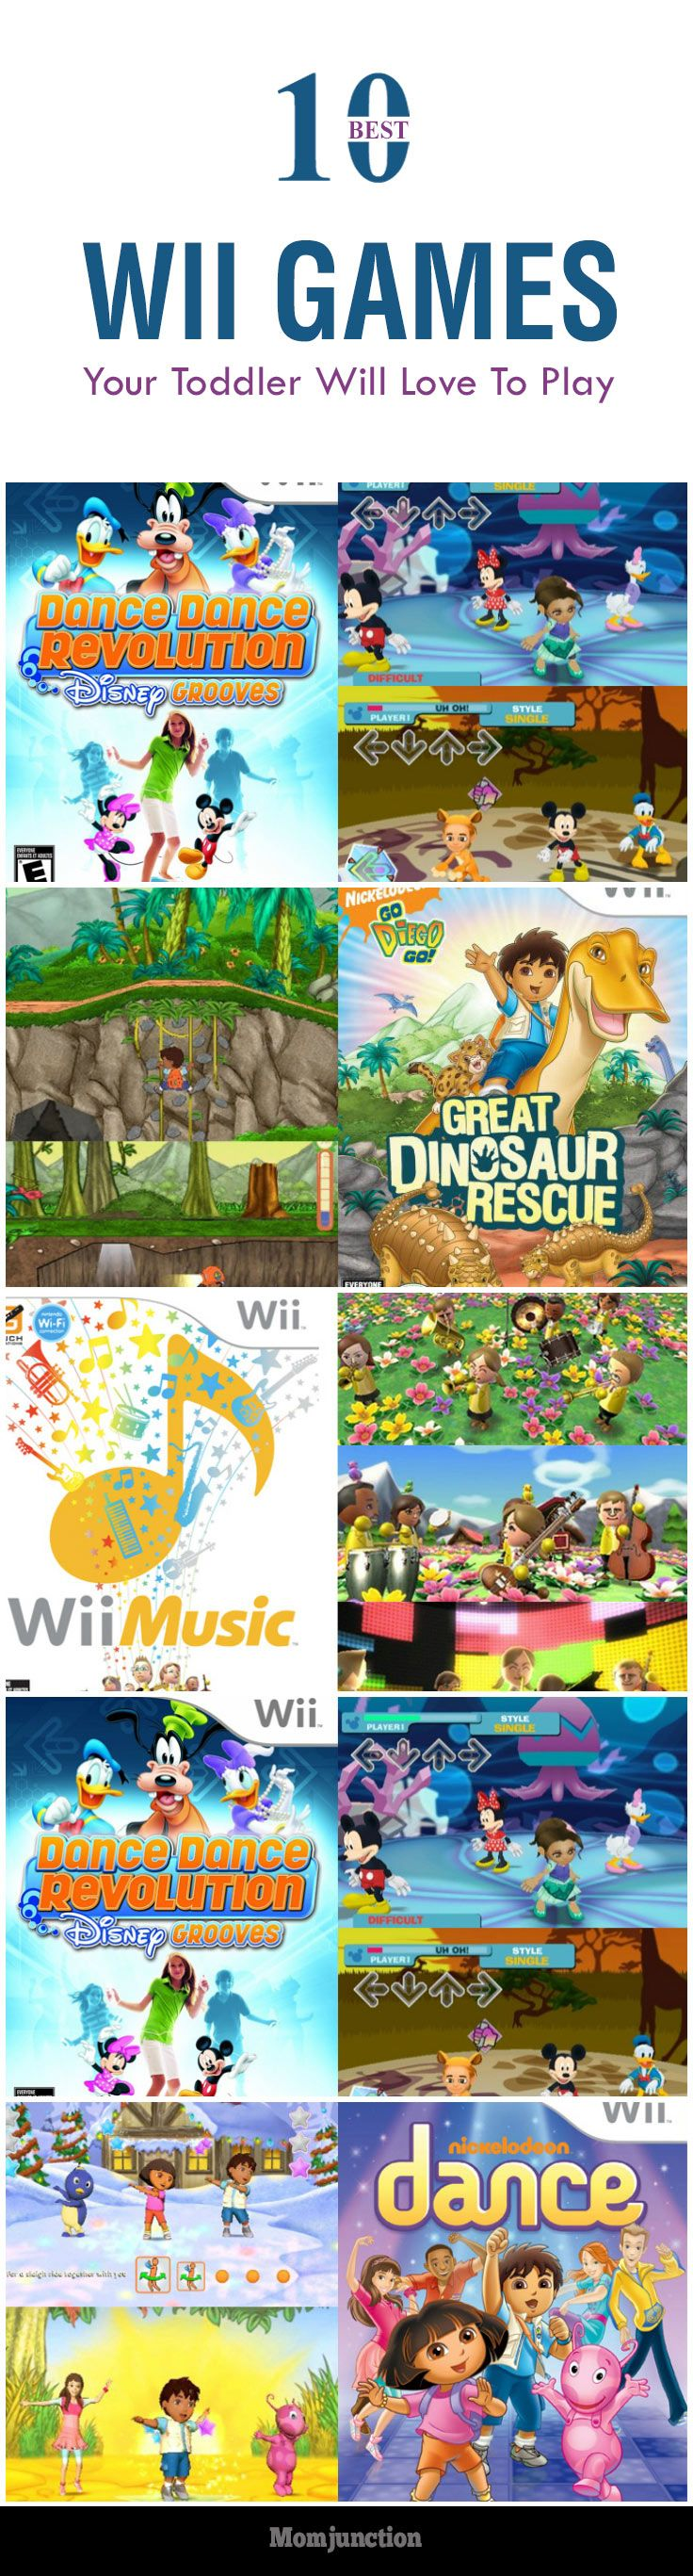 10 Best Wii Games Your Toddler Will Love To Play:  Here is our collection of 10 best Wii games for #Toddlers